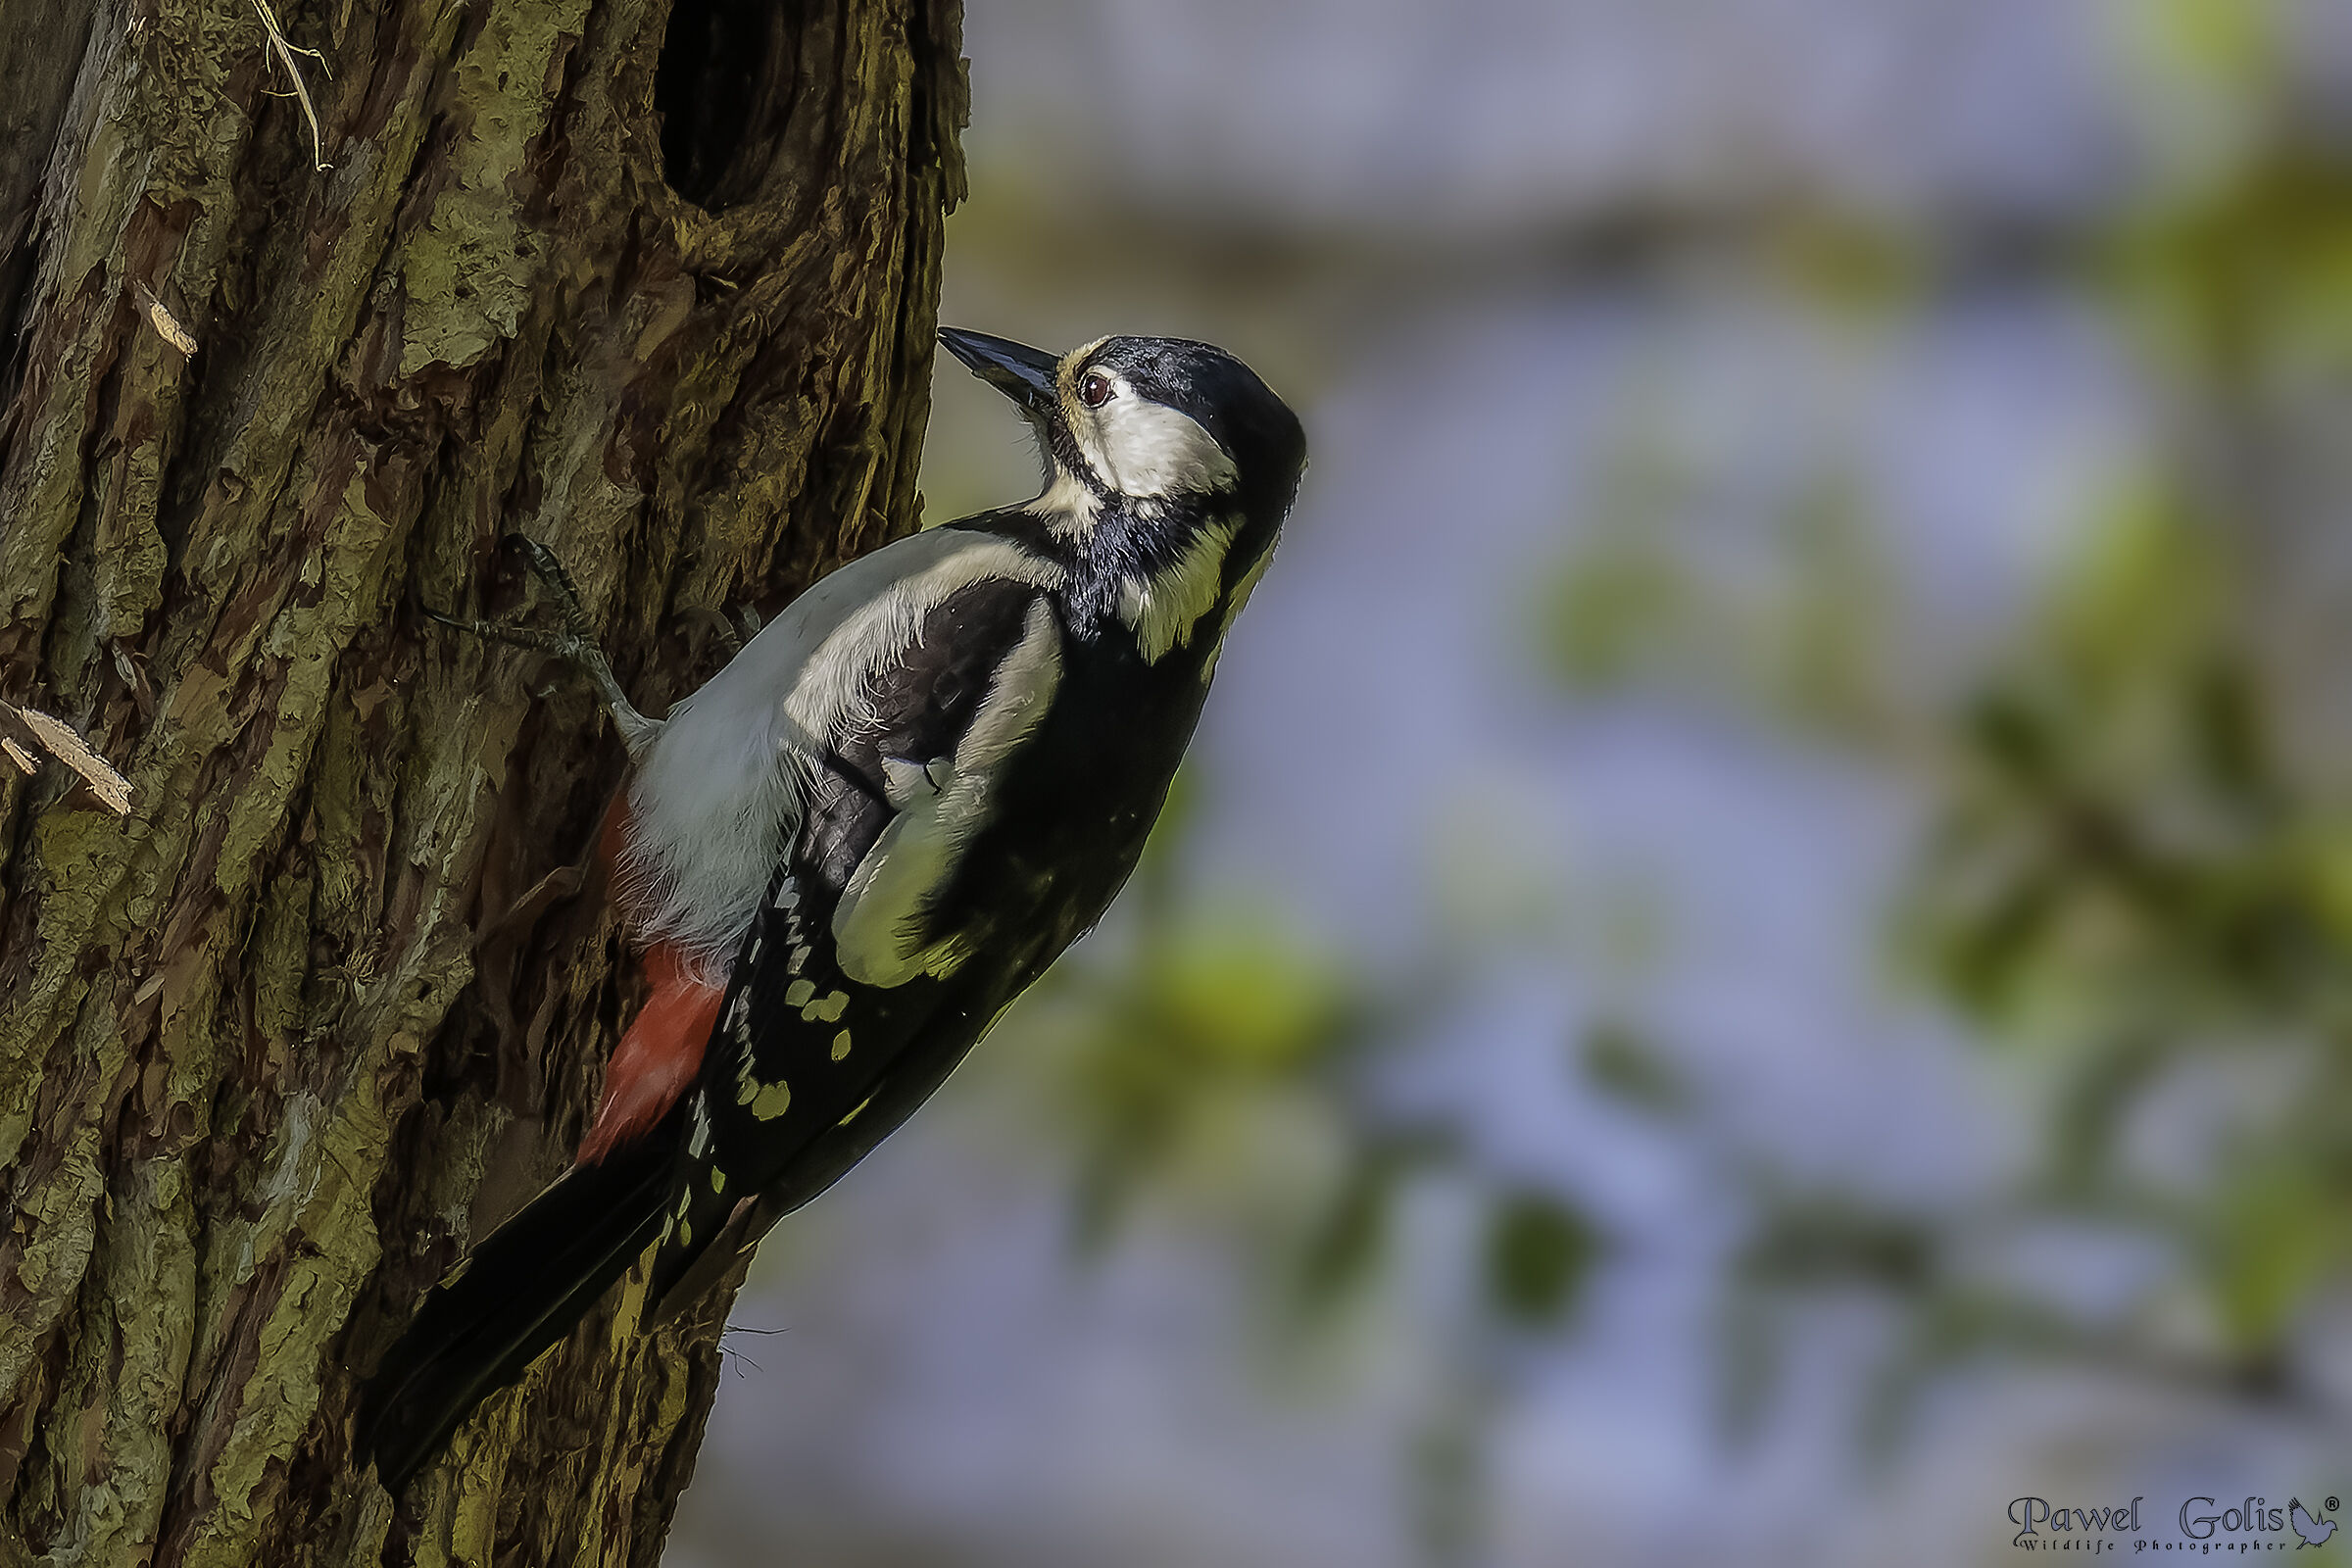 The great spotted woodpecker (Dendrocopos major)...